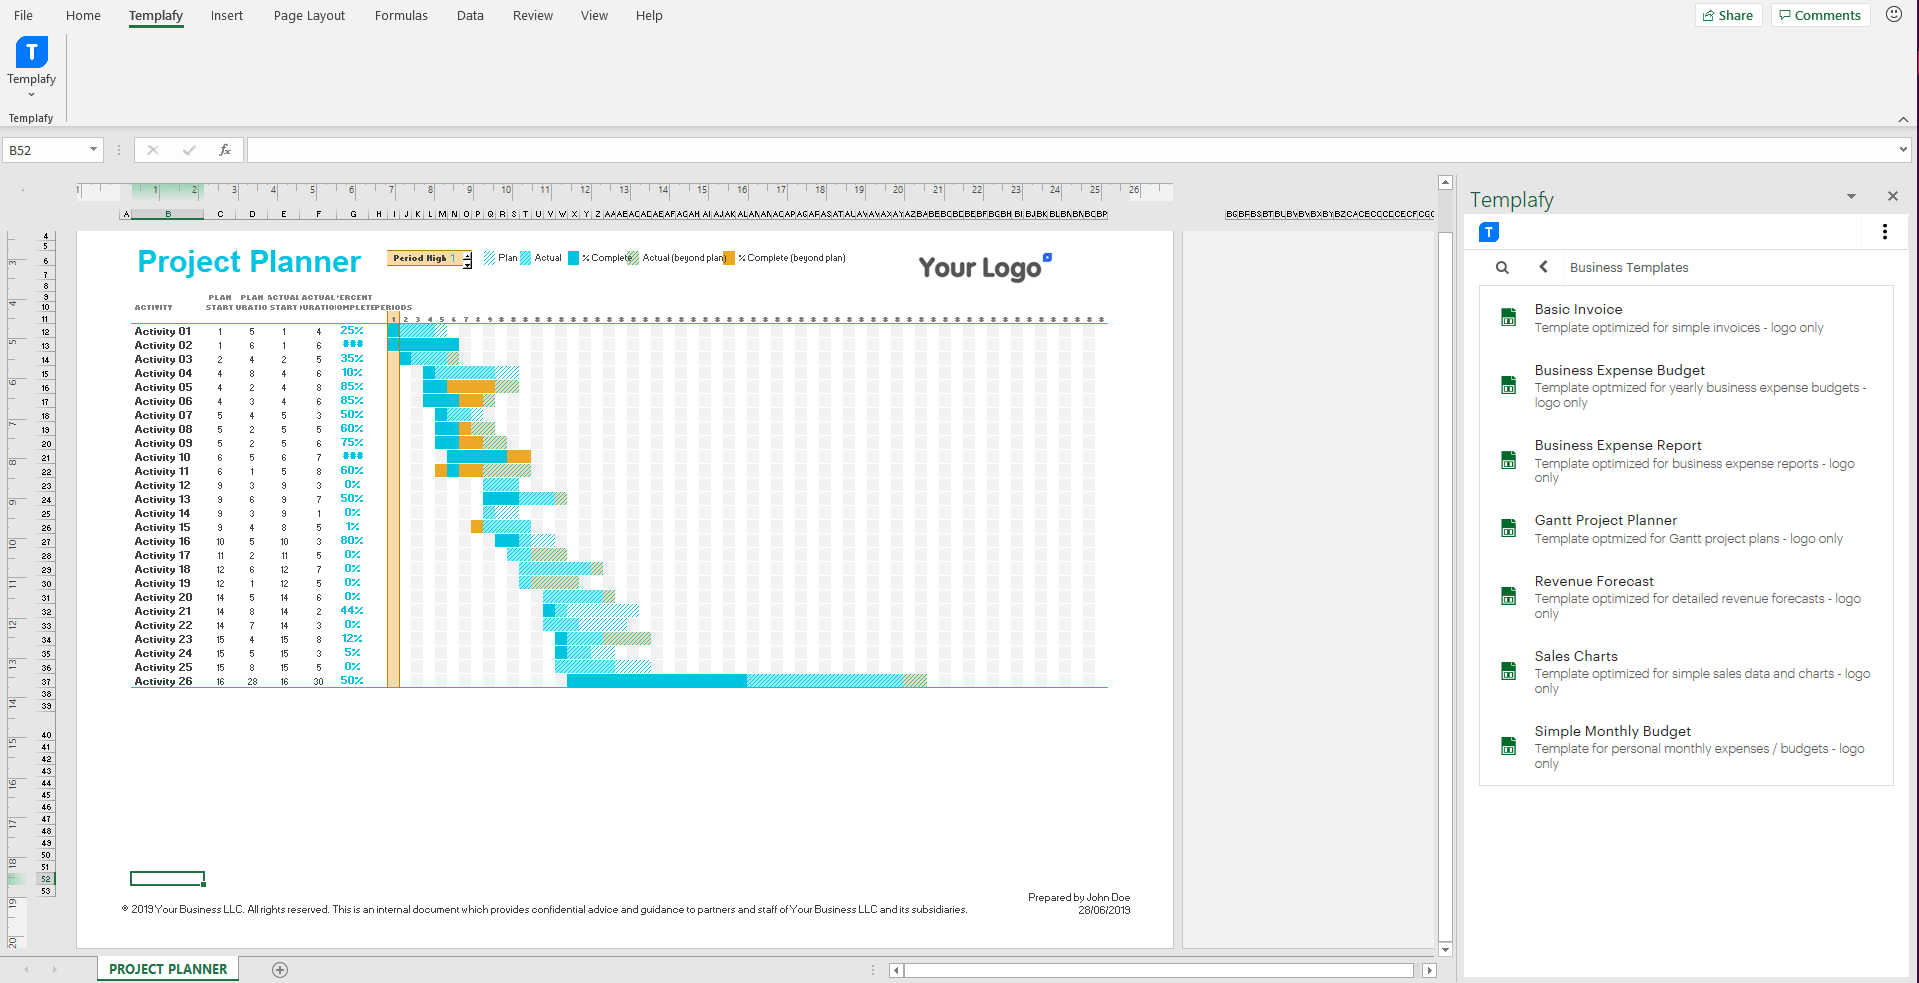 Screenshot of Templafy Dynamics in Excel